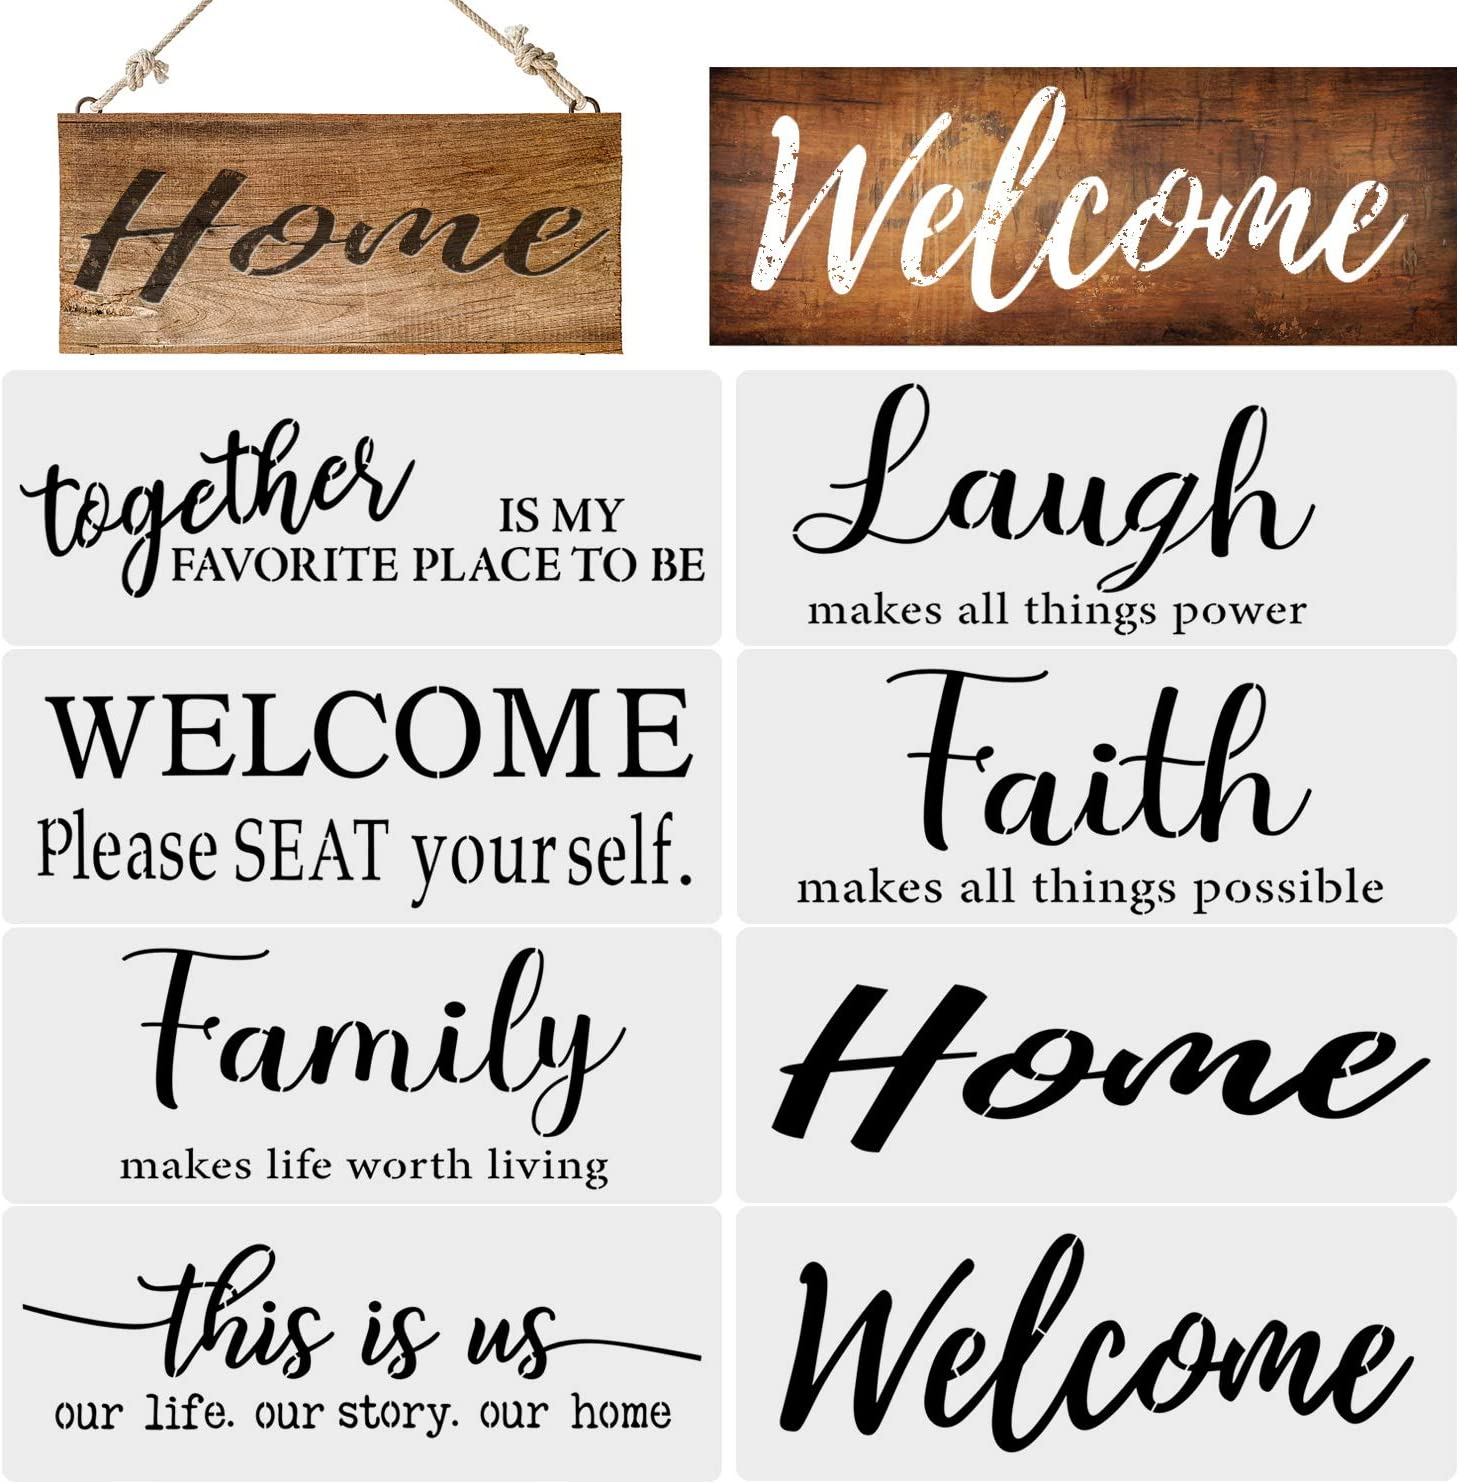 Funny Family Sign Stencil, Welcome Home Reusable Stencils Essential Inspirational Stenciling Kit Templat for Painting on Wood Farmhouse DIY Home Décor